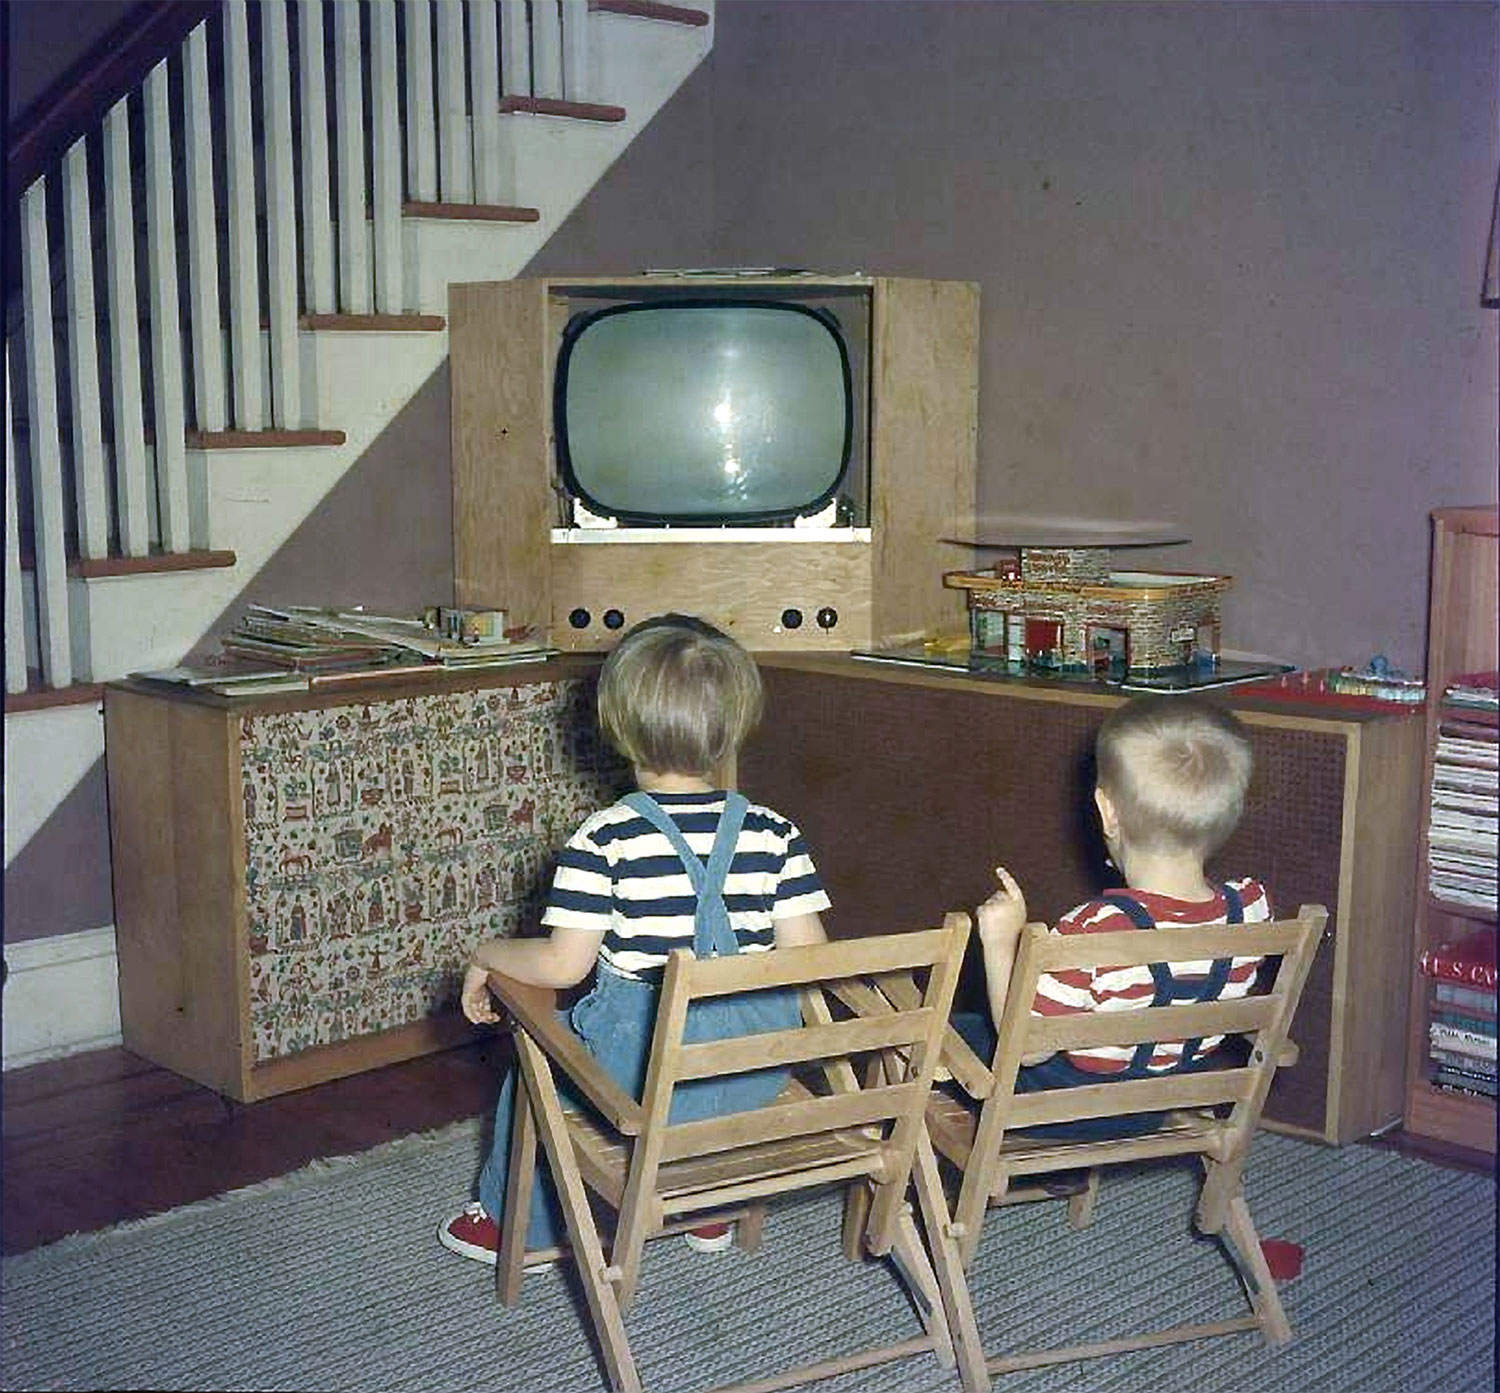 The author and his sister, Mary, watching the TV/hi-fi that their father built. Photo is circa late 1950s.